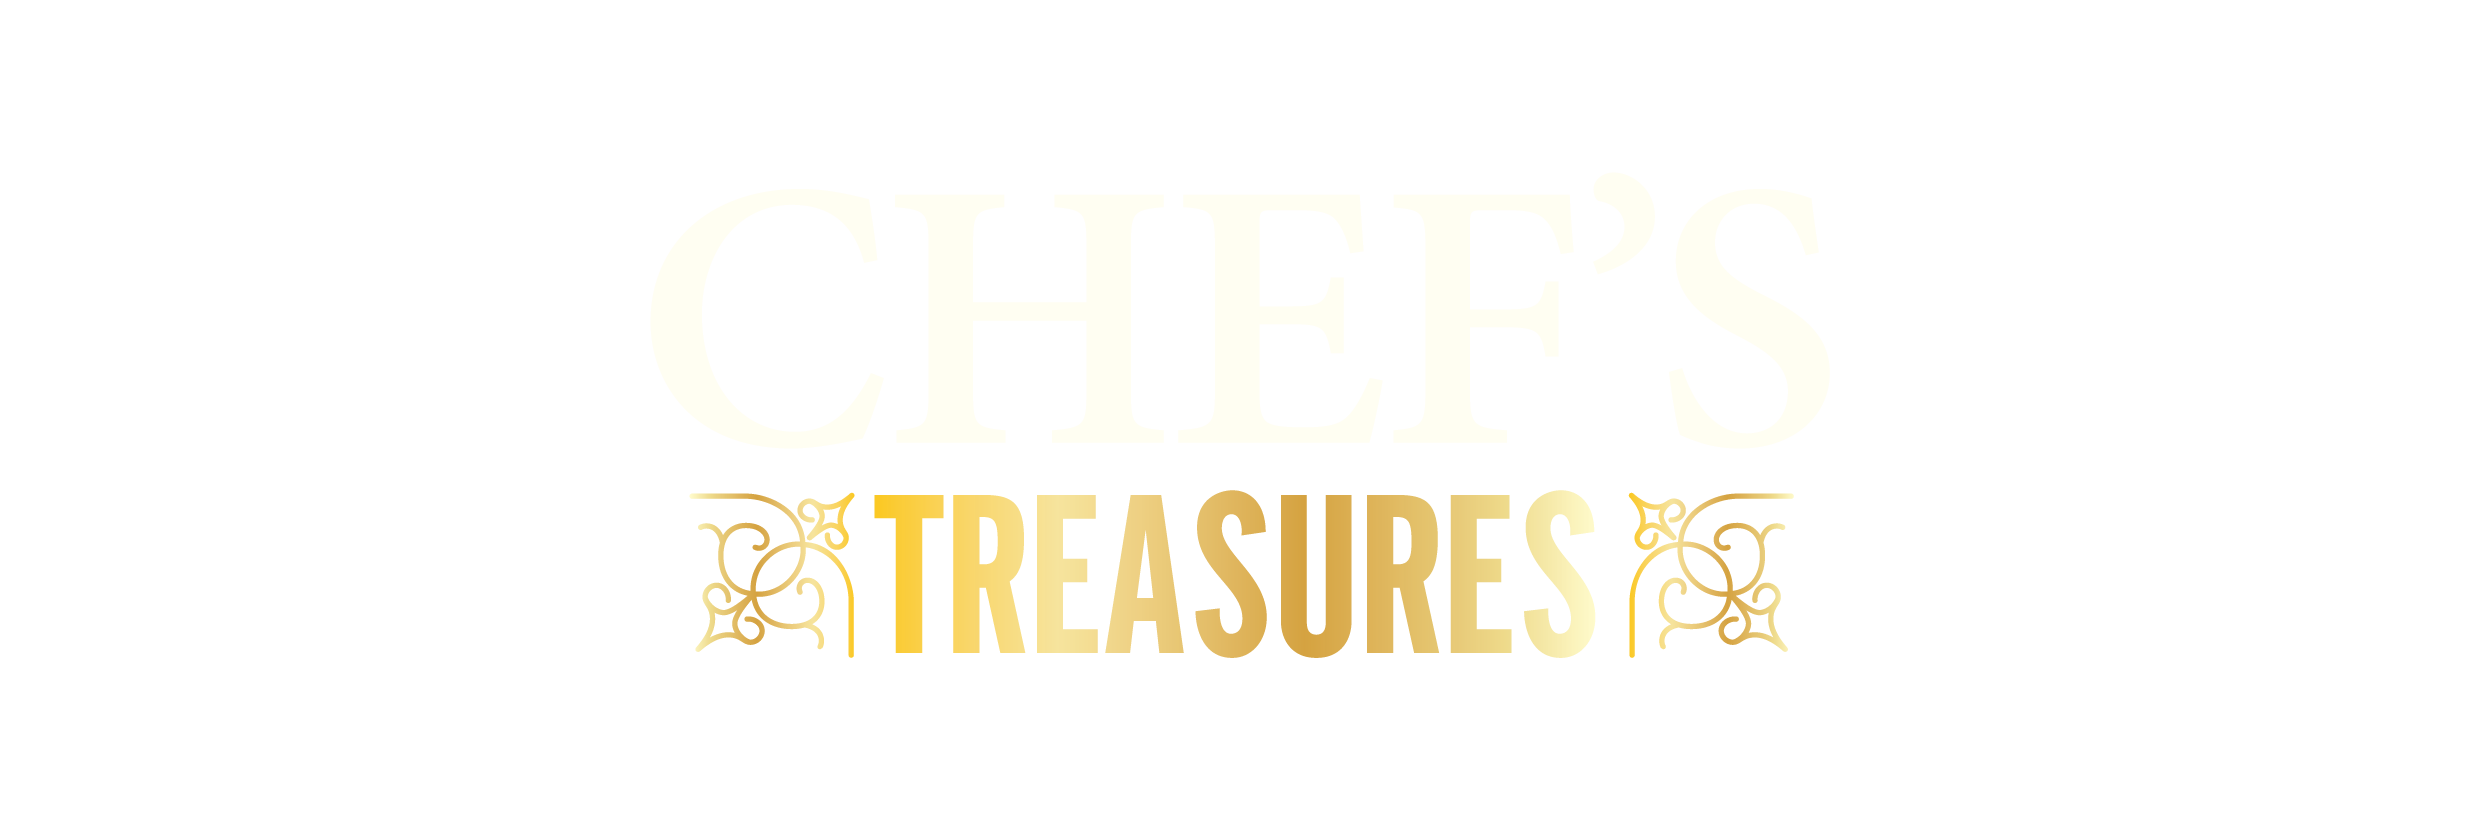 Chef's treasures hamper